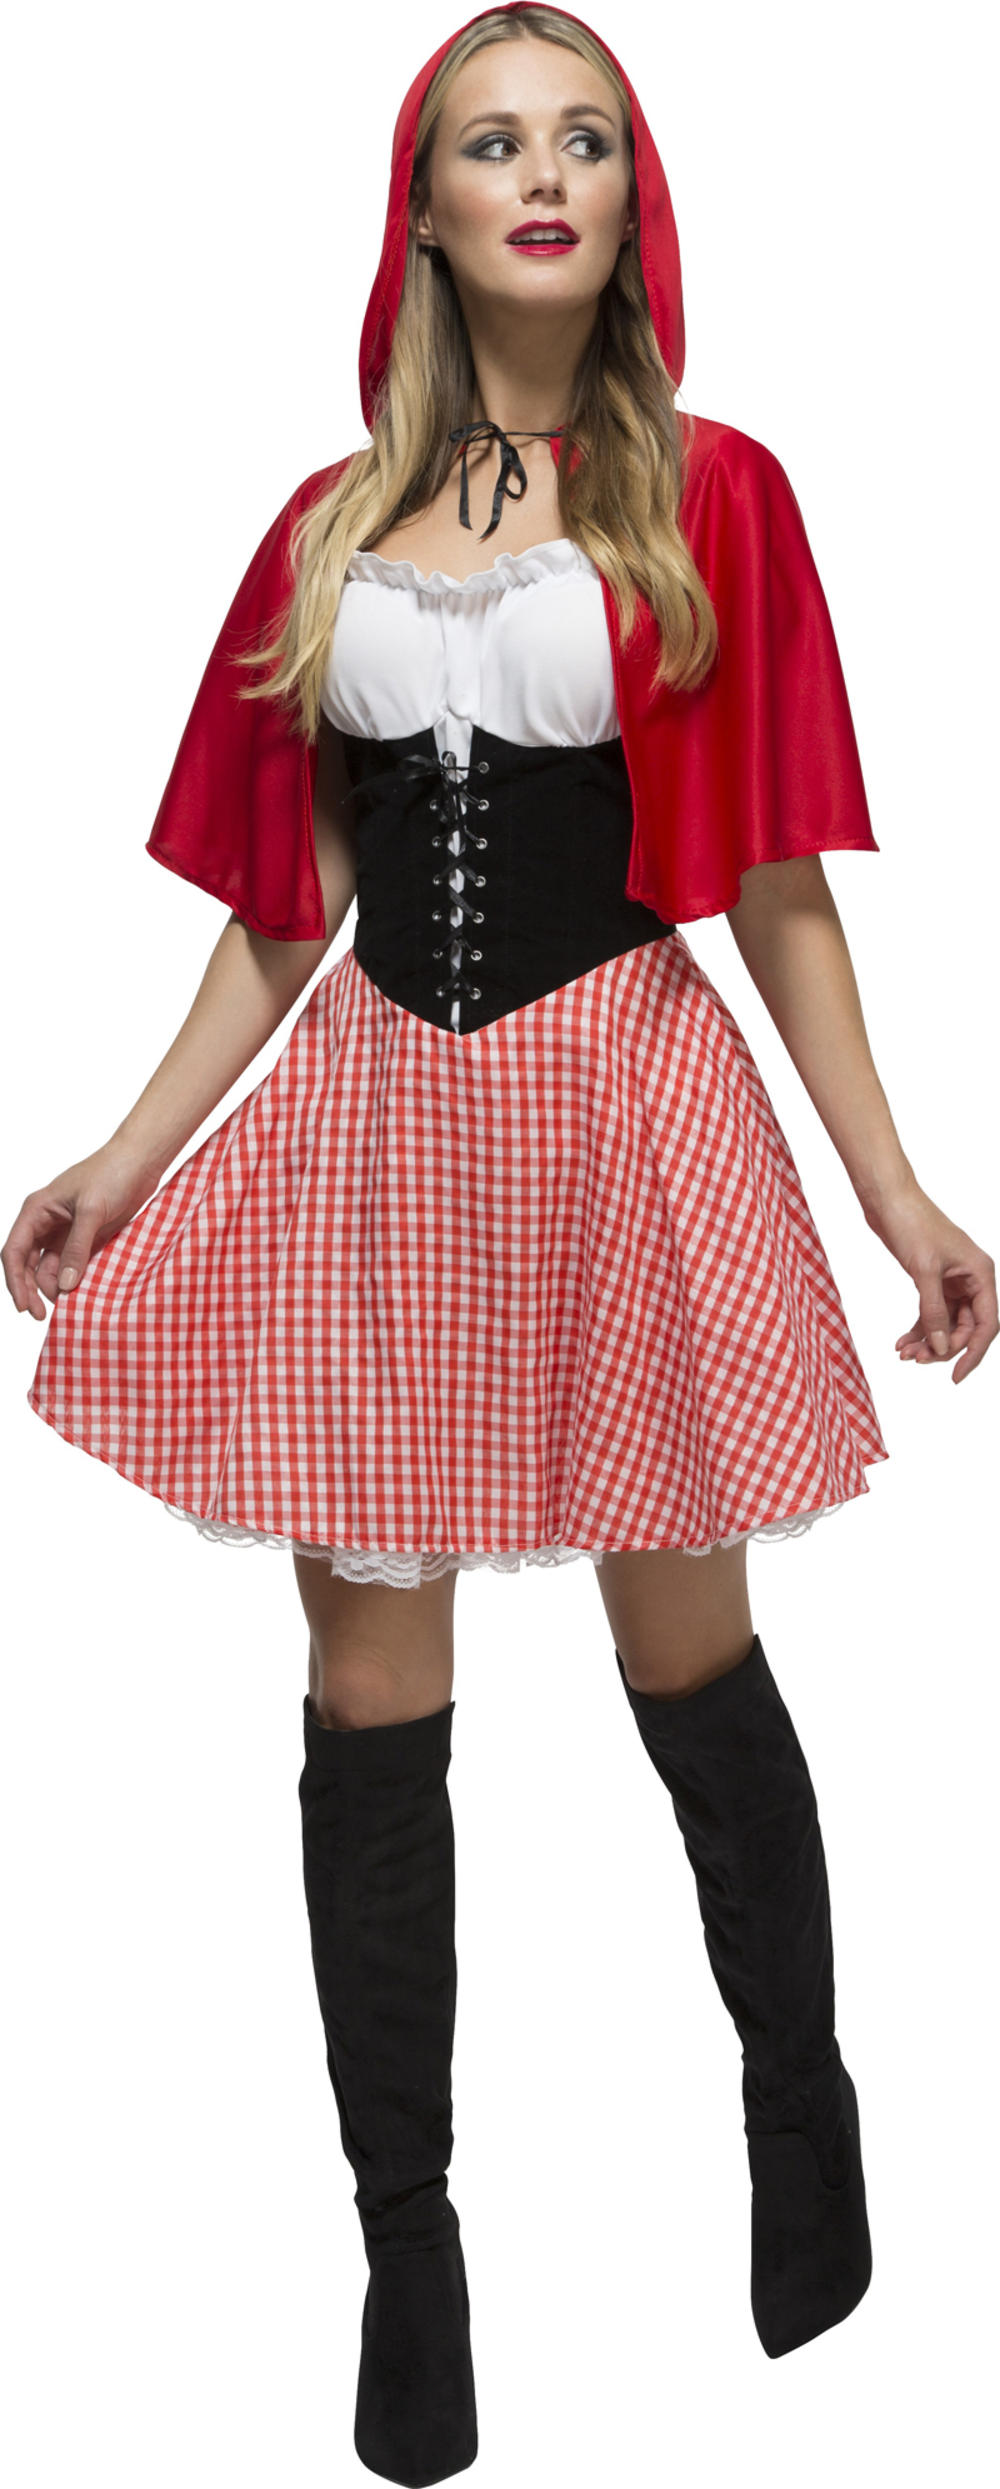 Fever Red Riding Hood Women's Costume